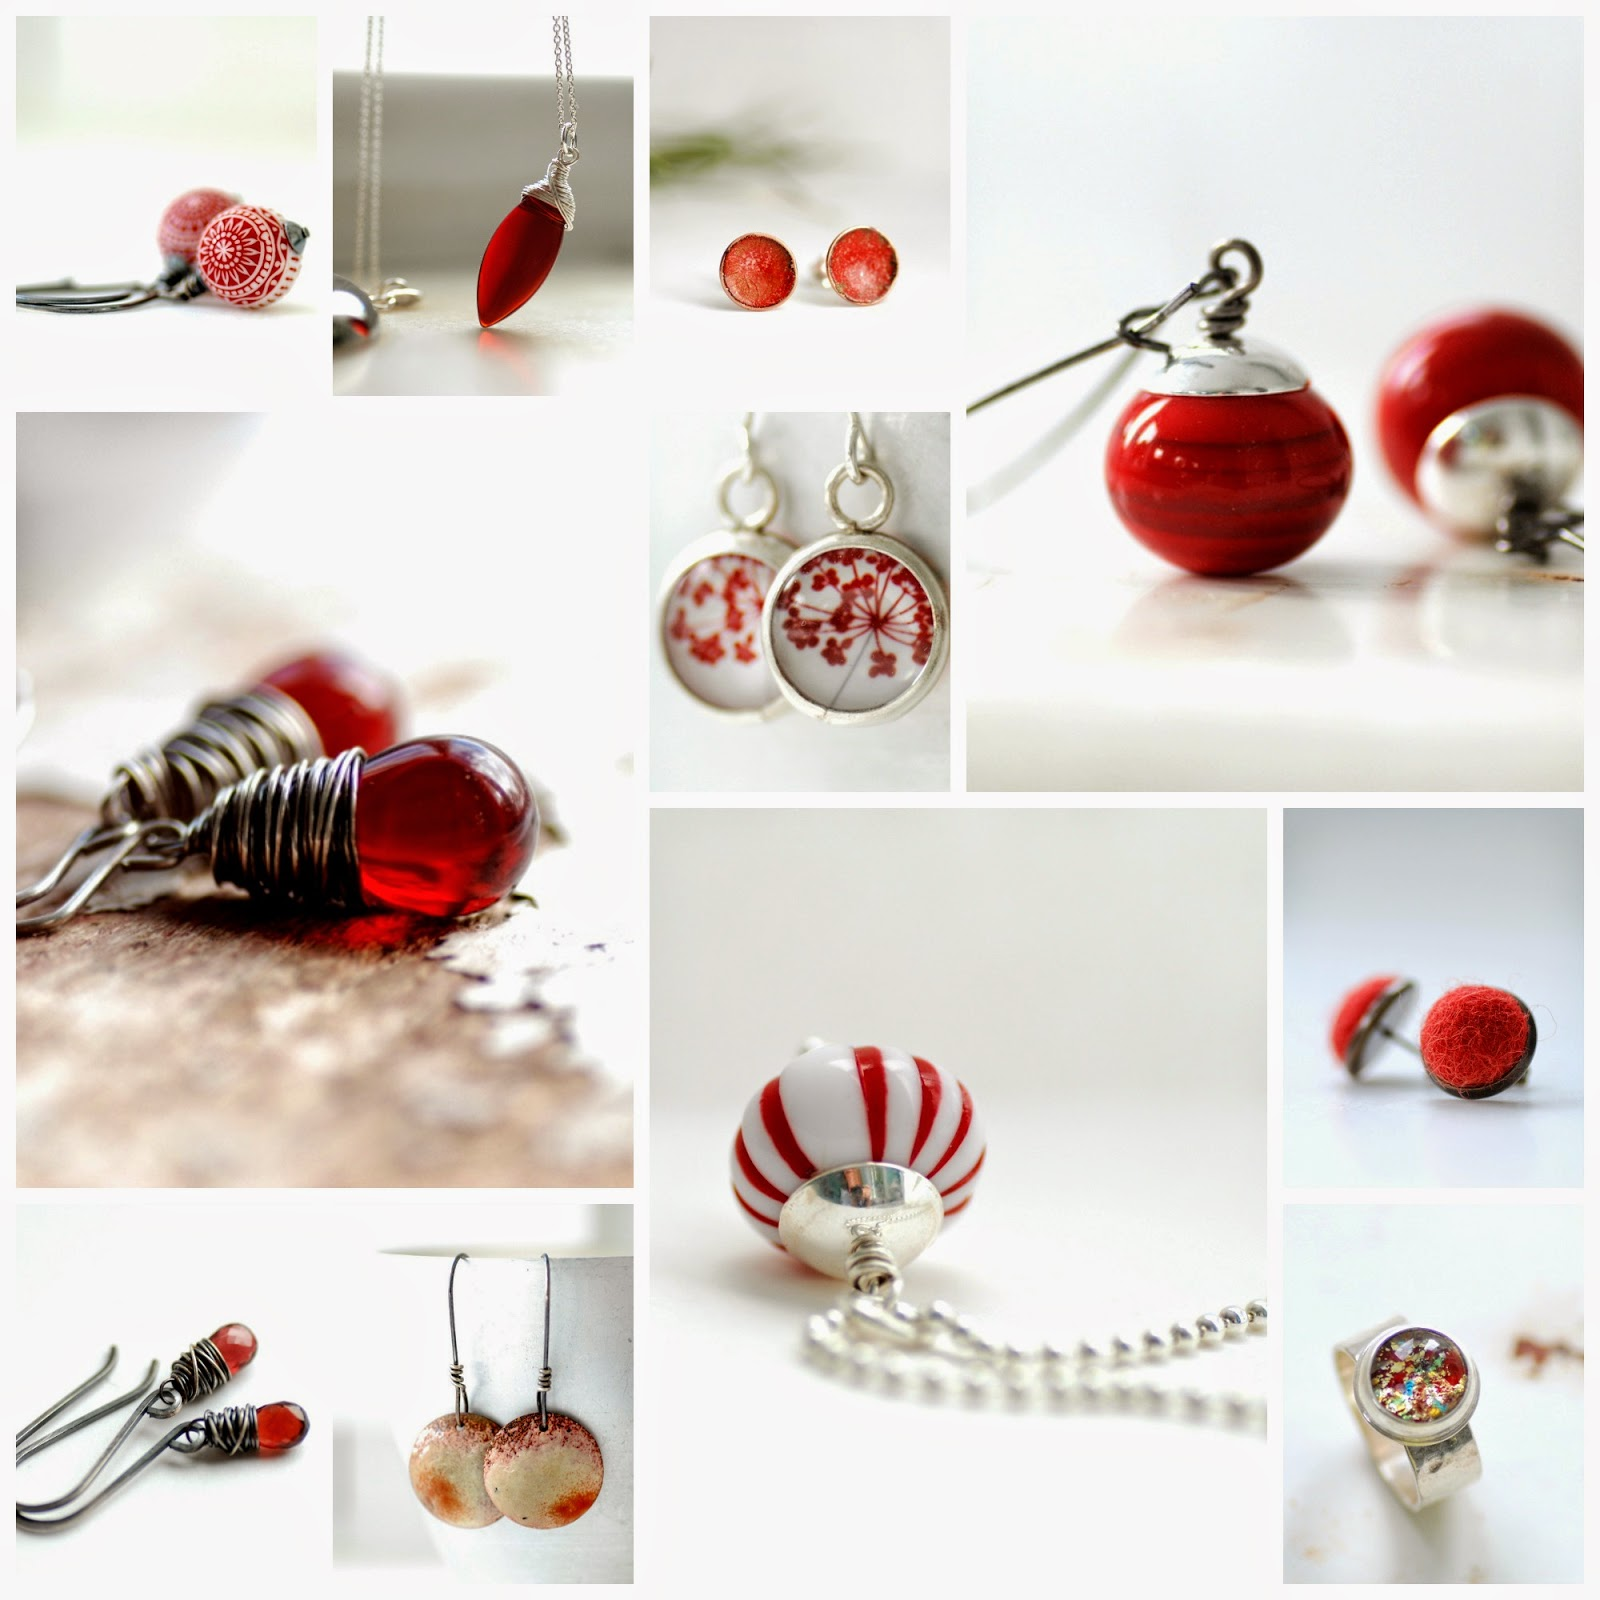 https://www.etsy.com/shop/WildWomanJewelry/search?search_query=red&order=date_desc&view_type=gallery&ref=shop_search